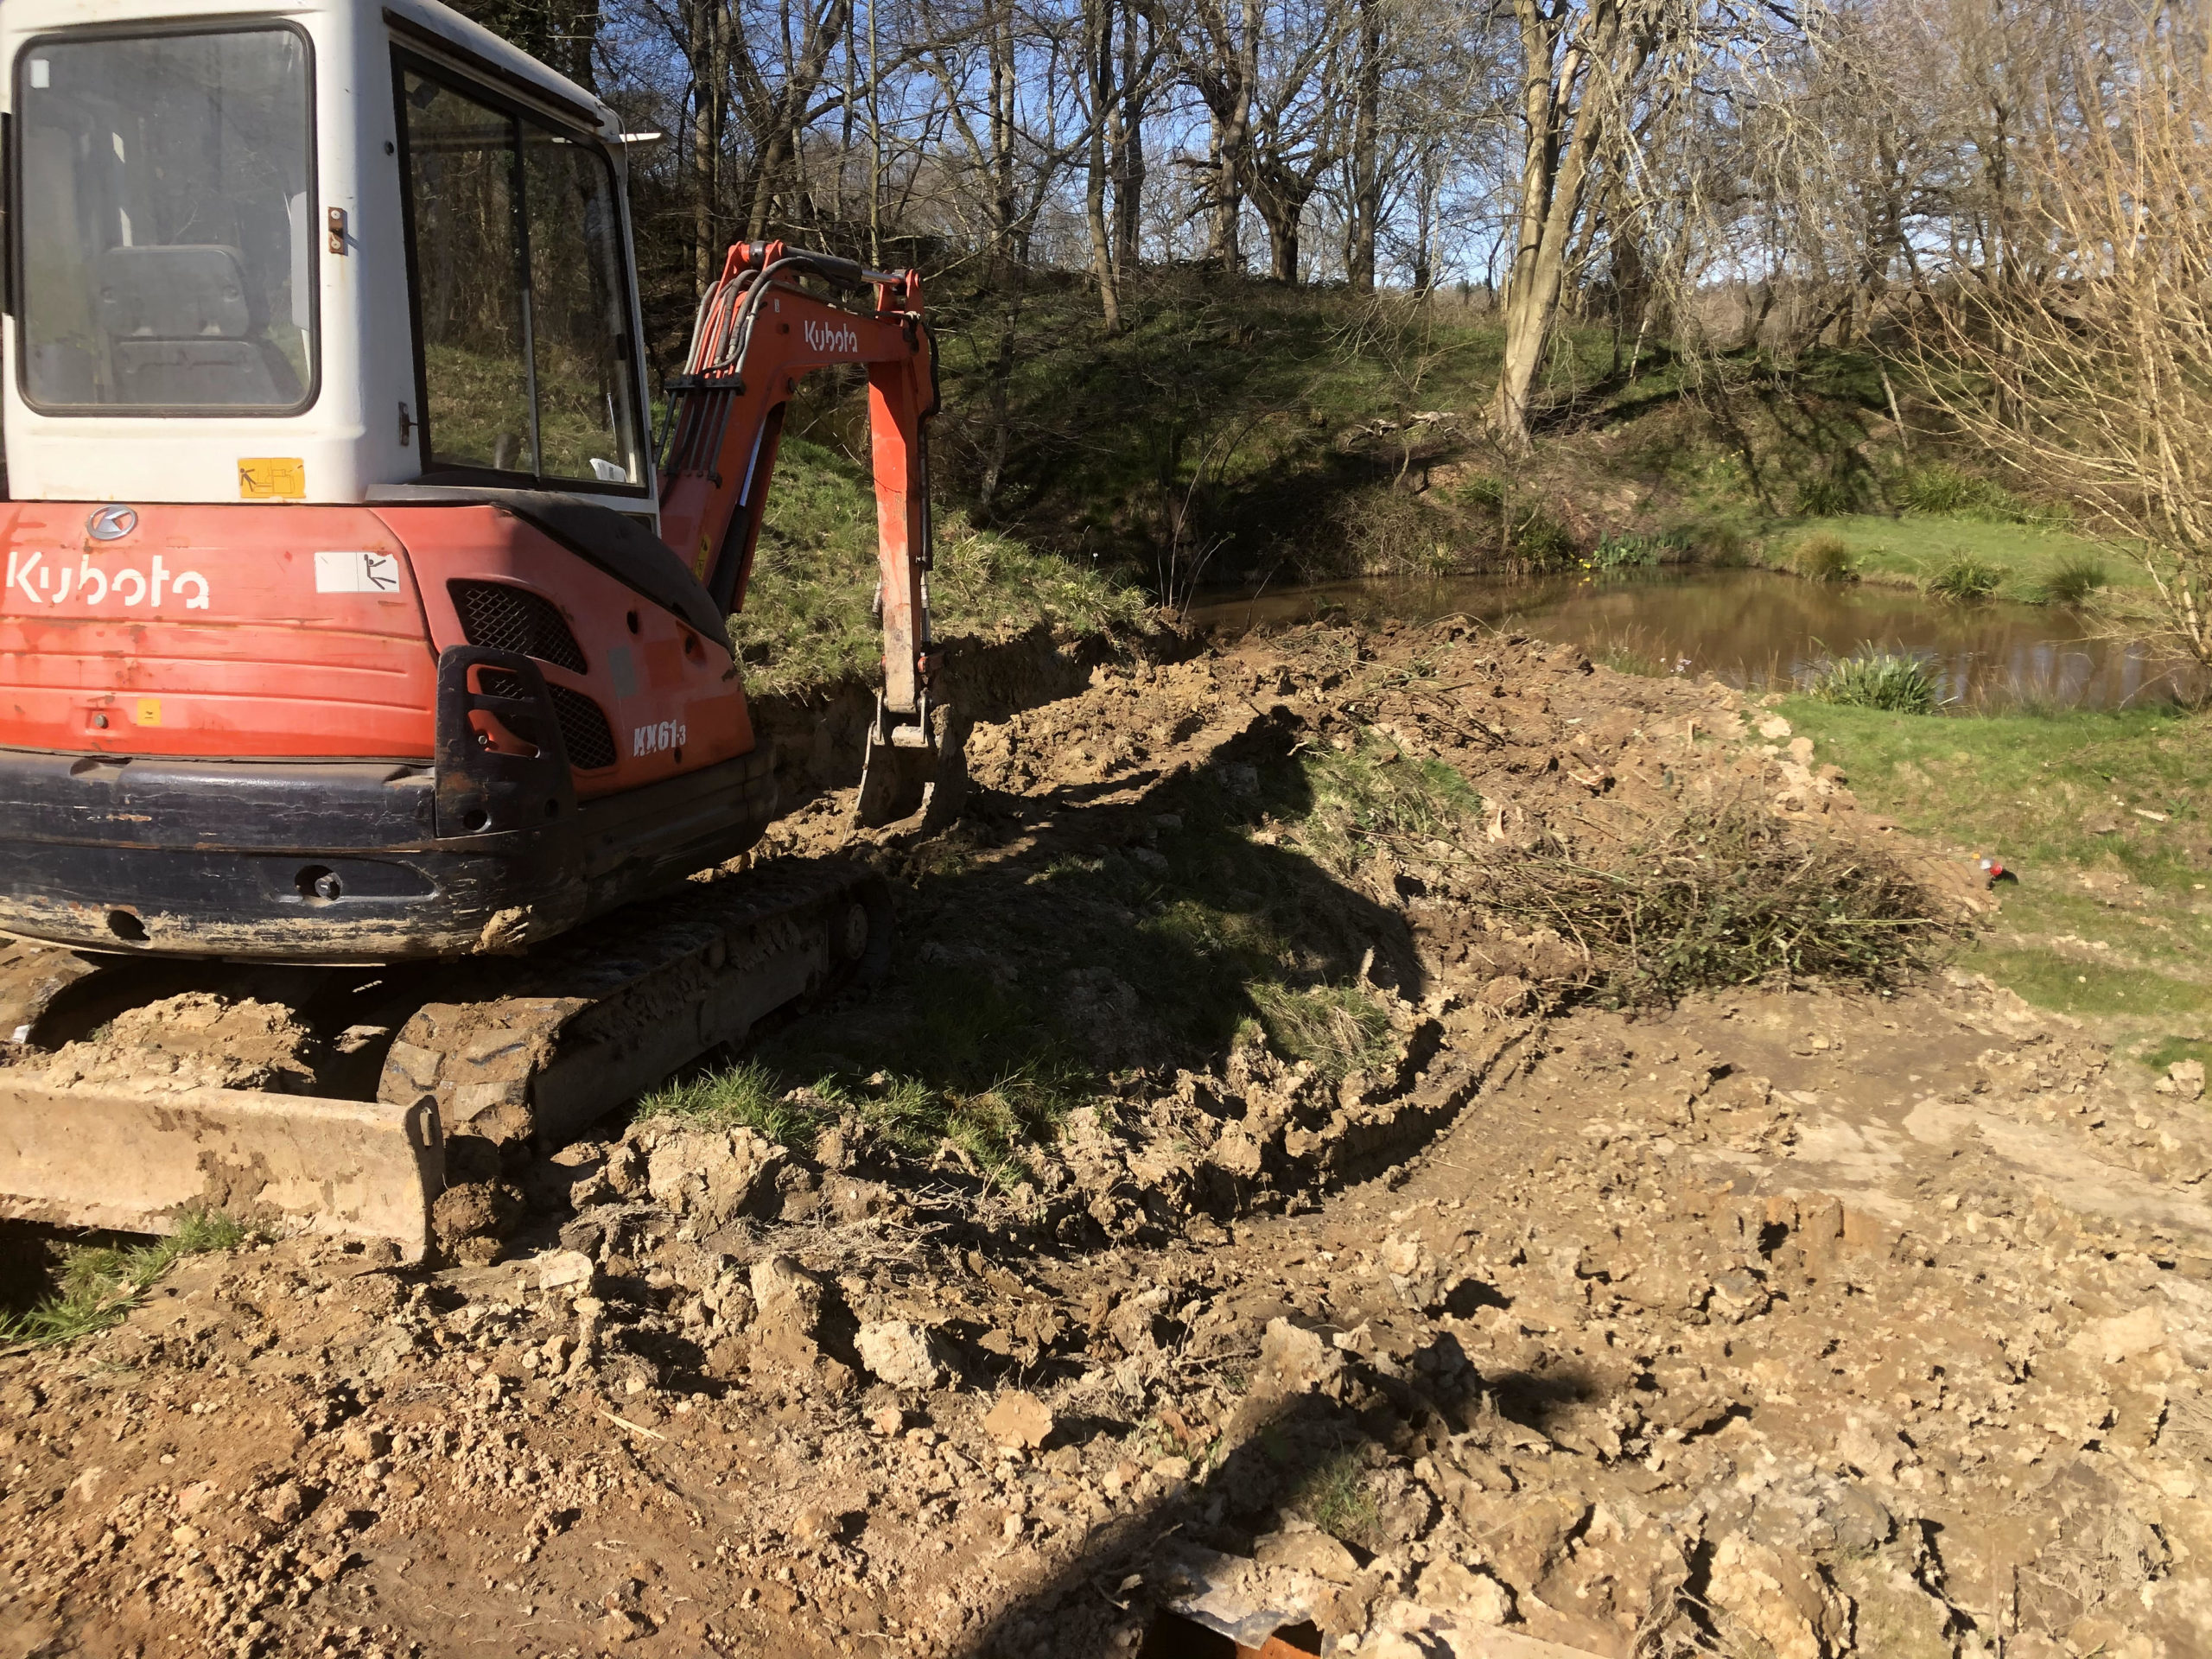 kubota 3t digger levelling area in east sussex